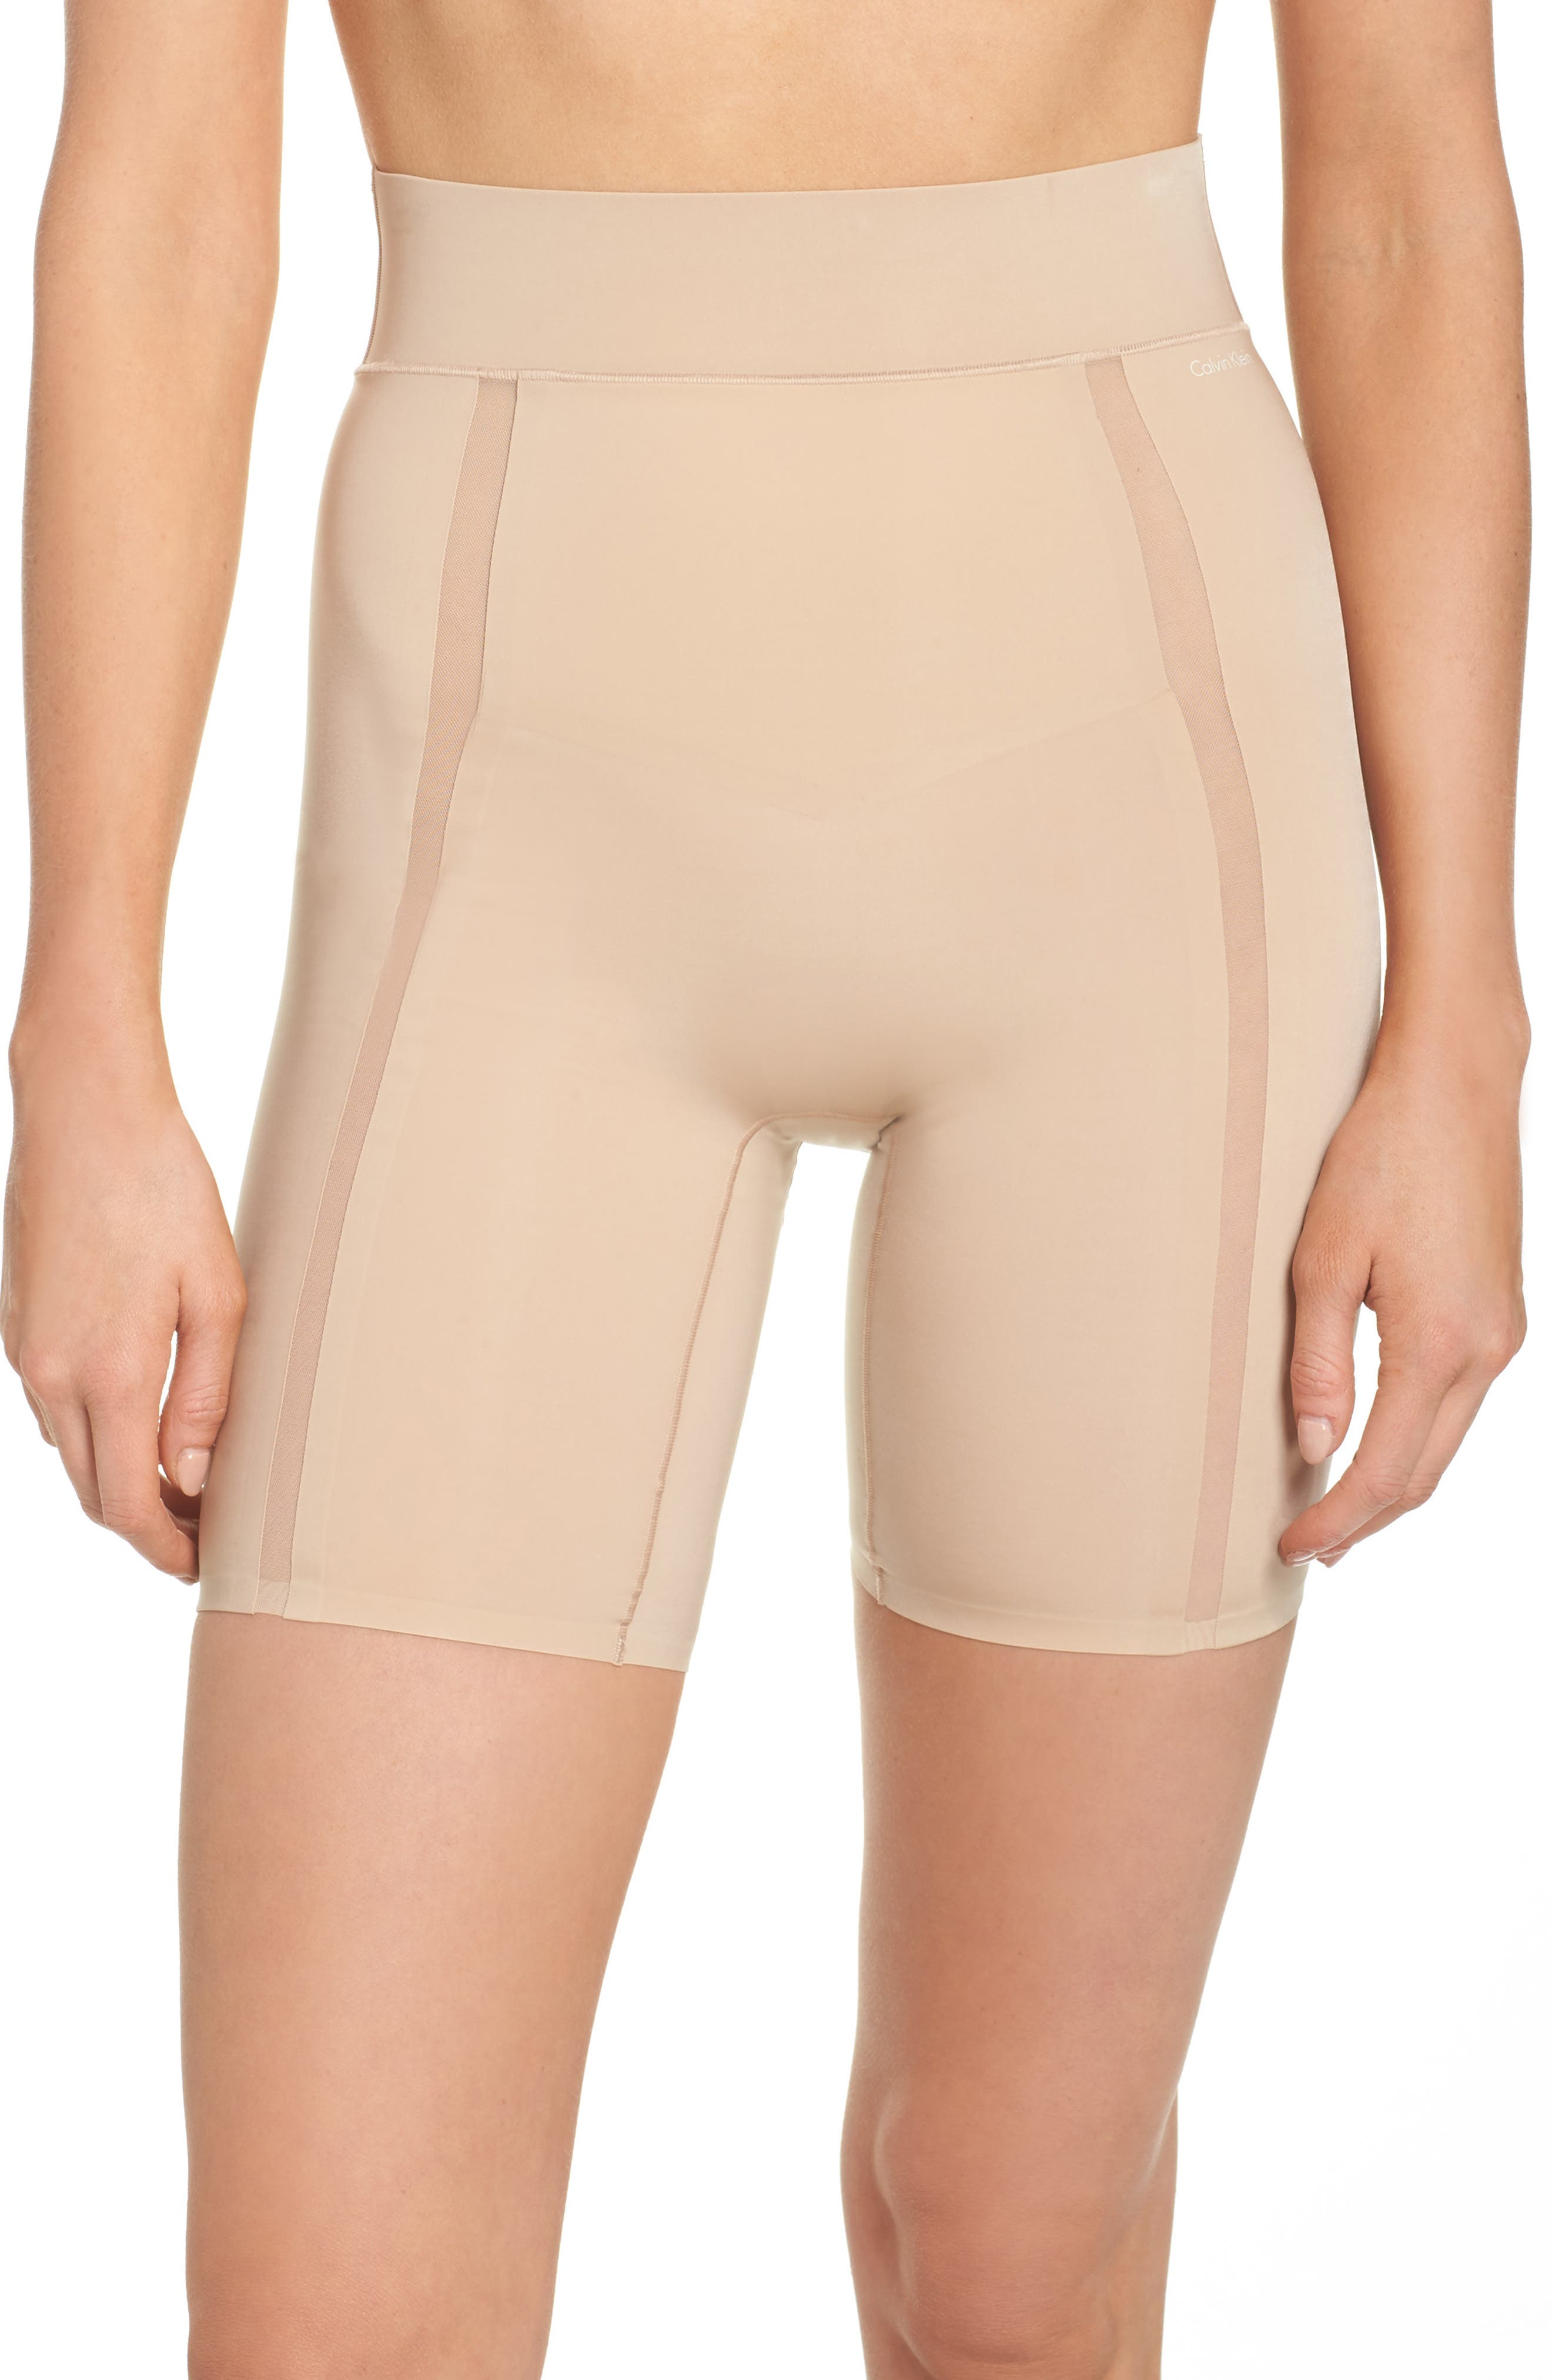 Sculpted Shapewear Thigh Shaper,                         Main,                         color, 250